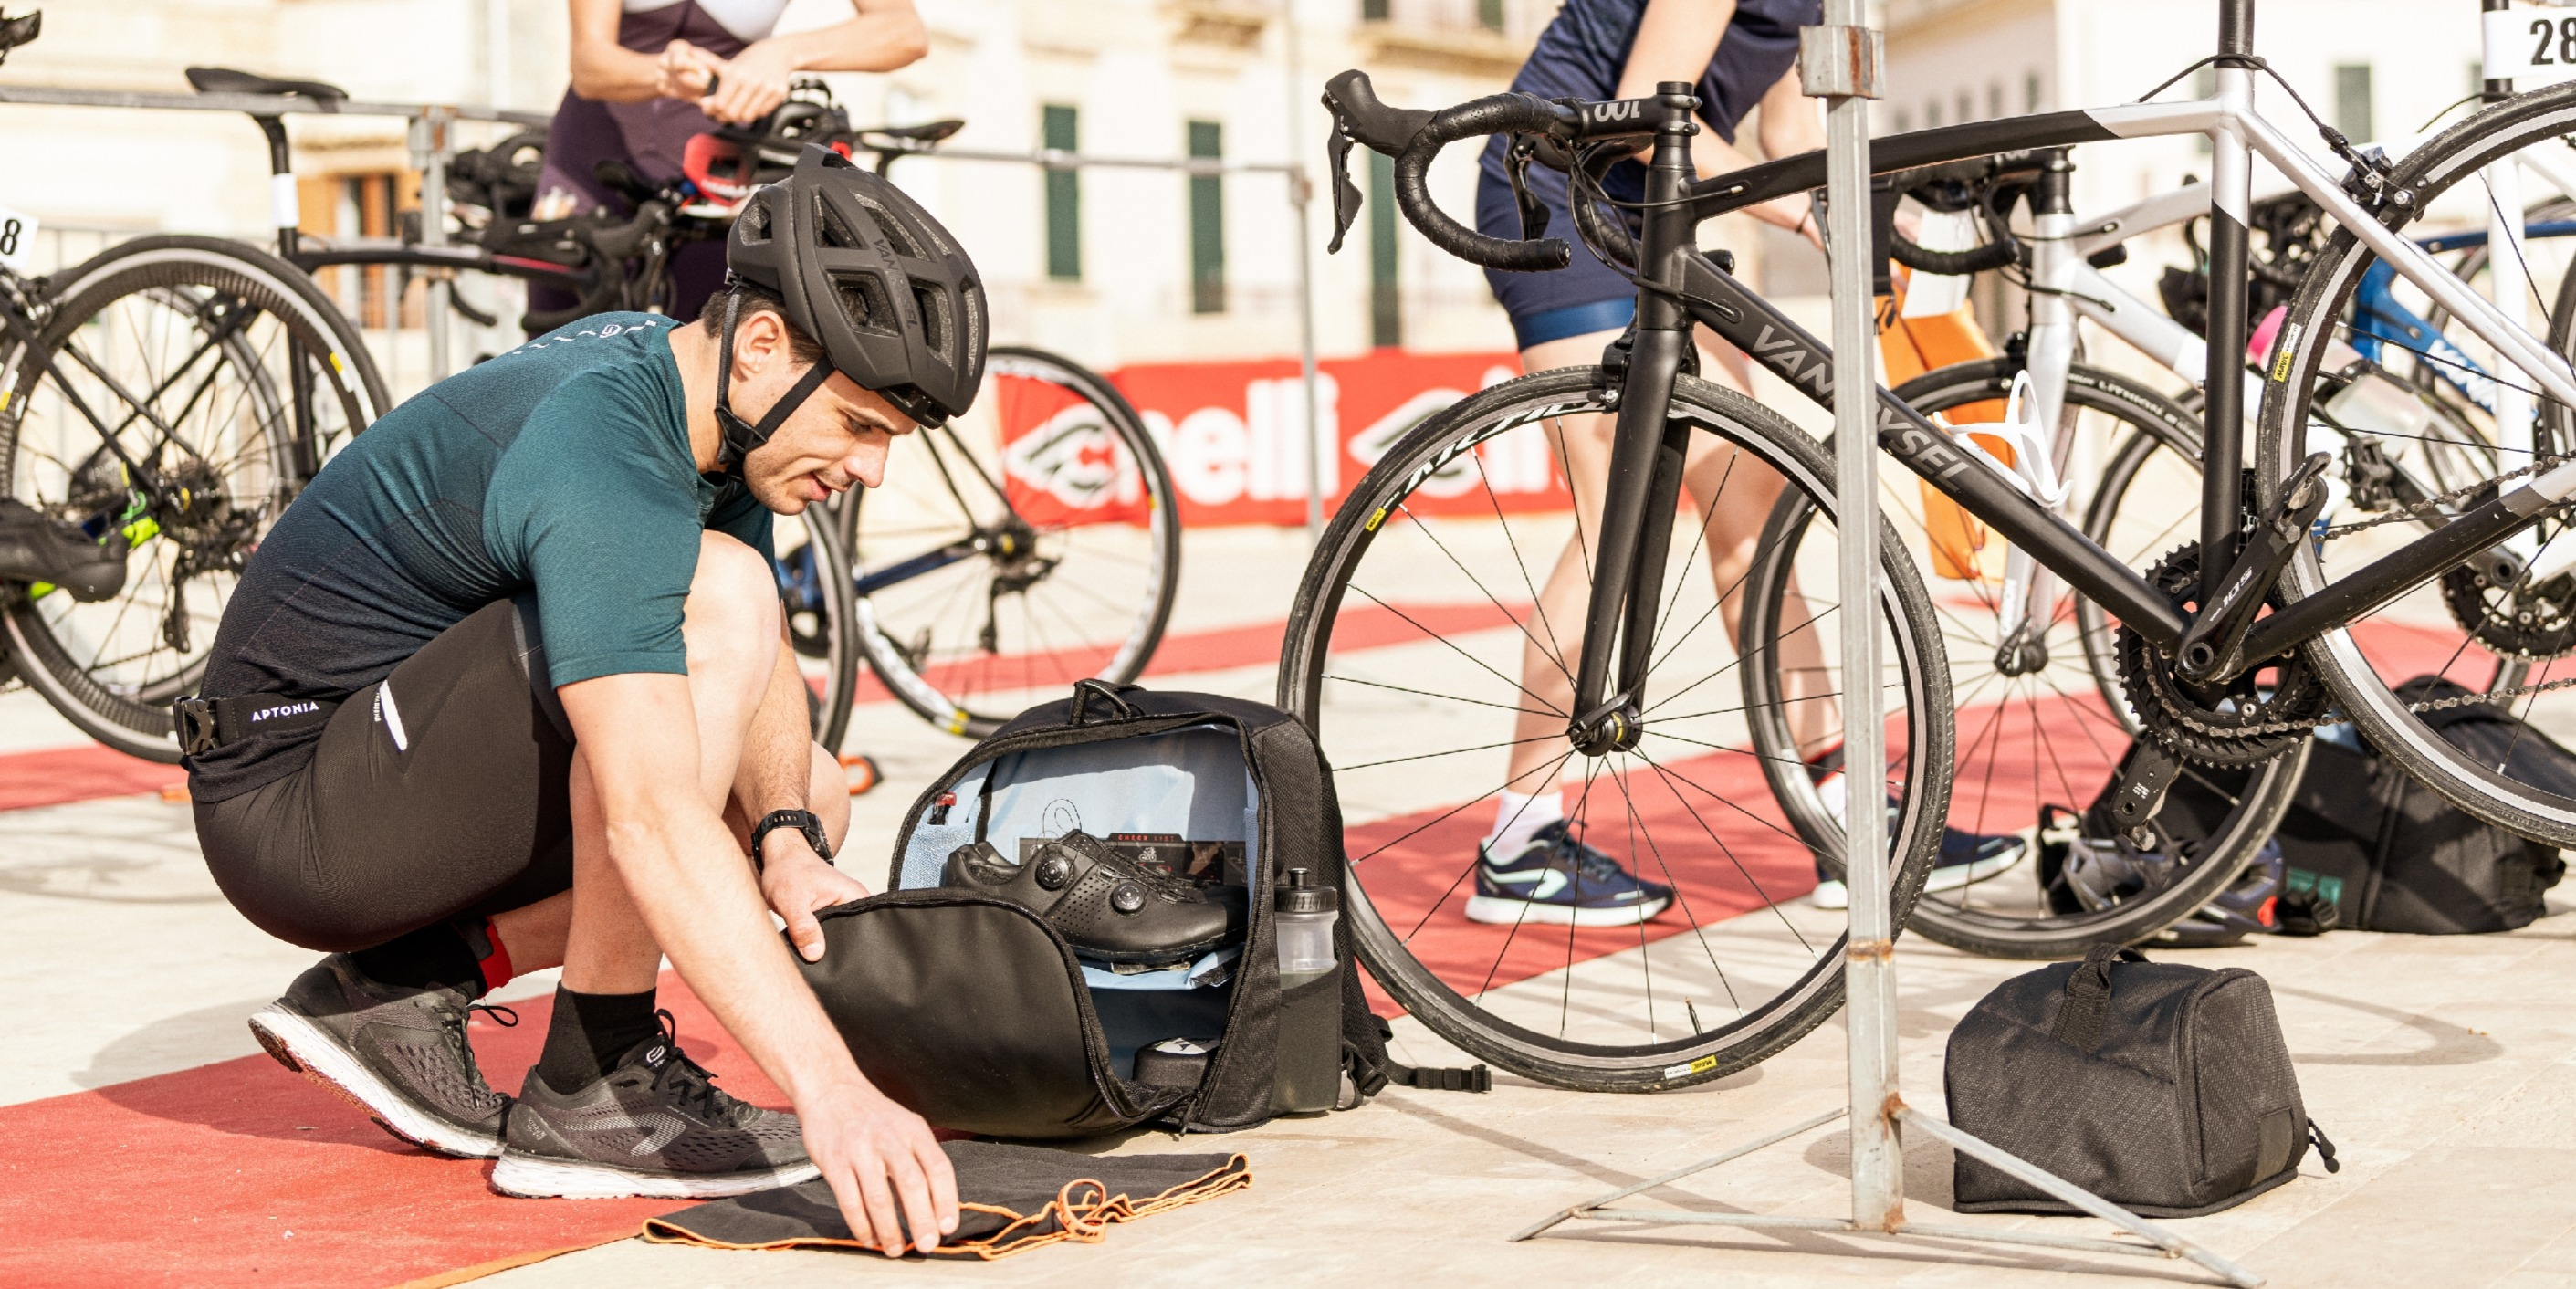 Essential Gear And Equipment For Urban Cycling